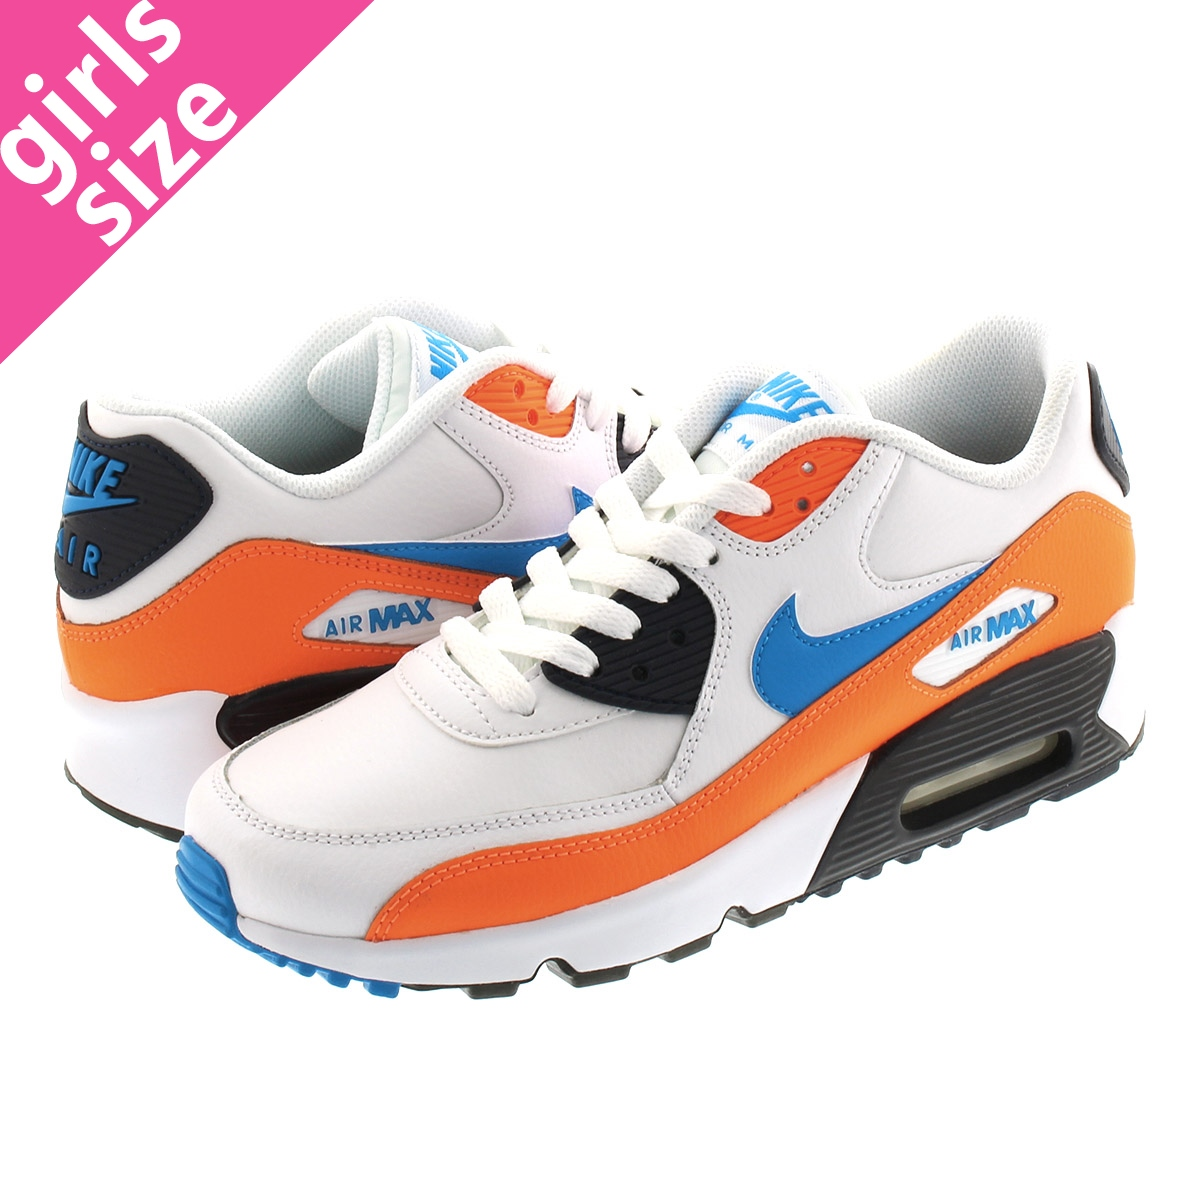 NIKE AIR MAX 90 LTR GS Kie Ney AMAX 90 leather GS WHITEPHOTO BLUETOTAL ORANGE 833,412 116